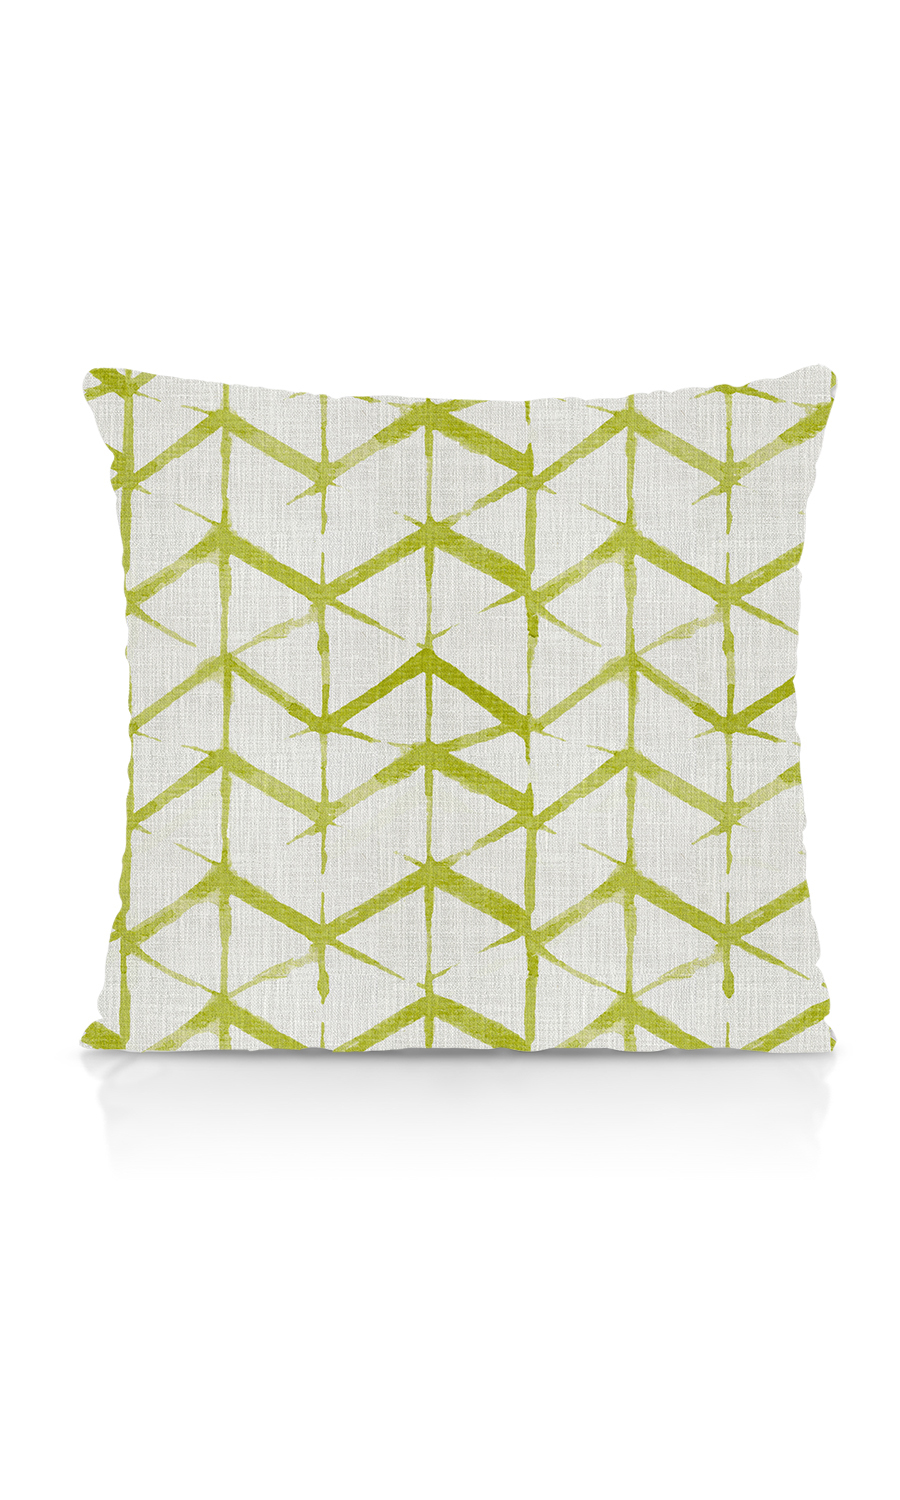 Zig Zag Printed Budget Cushion Cover